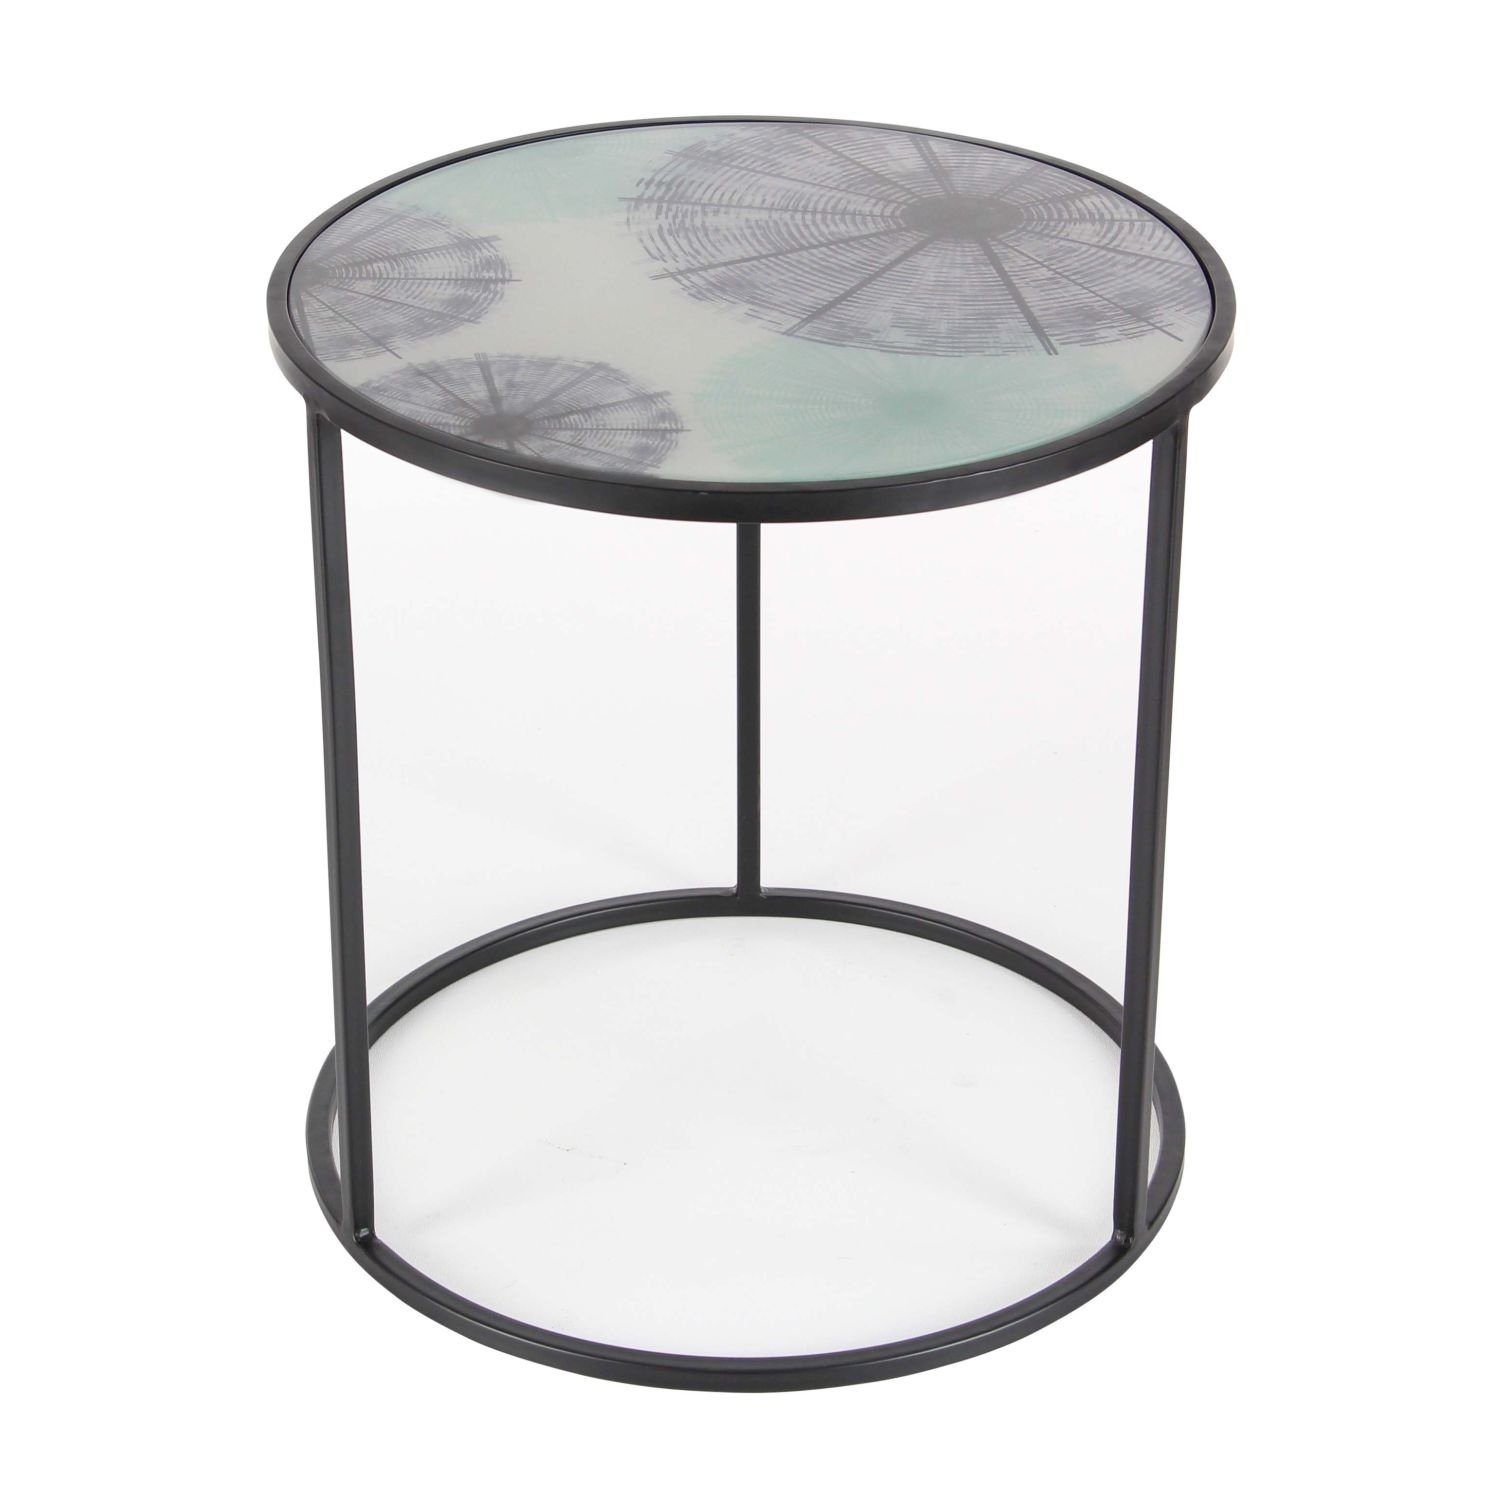 studio metal glass accent table set inches high free shipping today floor mirror coffee end tables target white and gold side long narrow behind couch kids rugs gray west elm